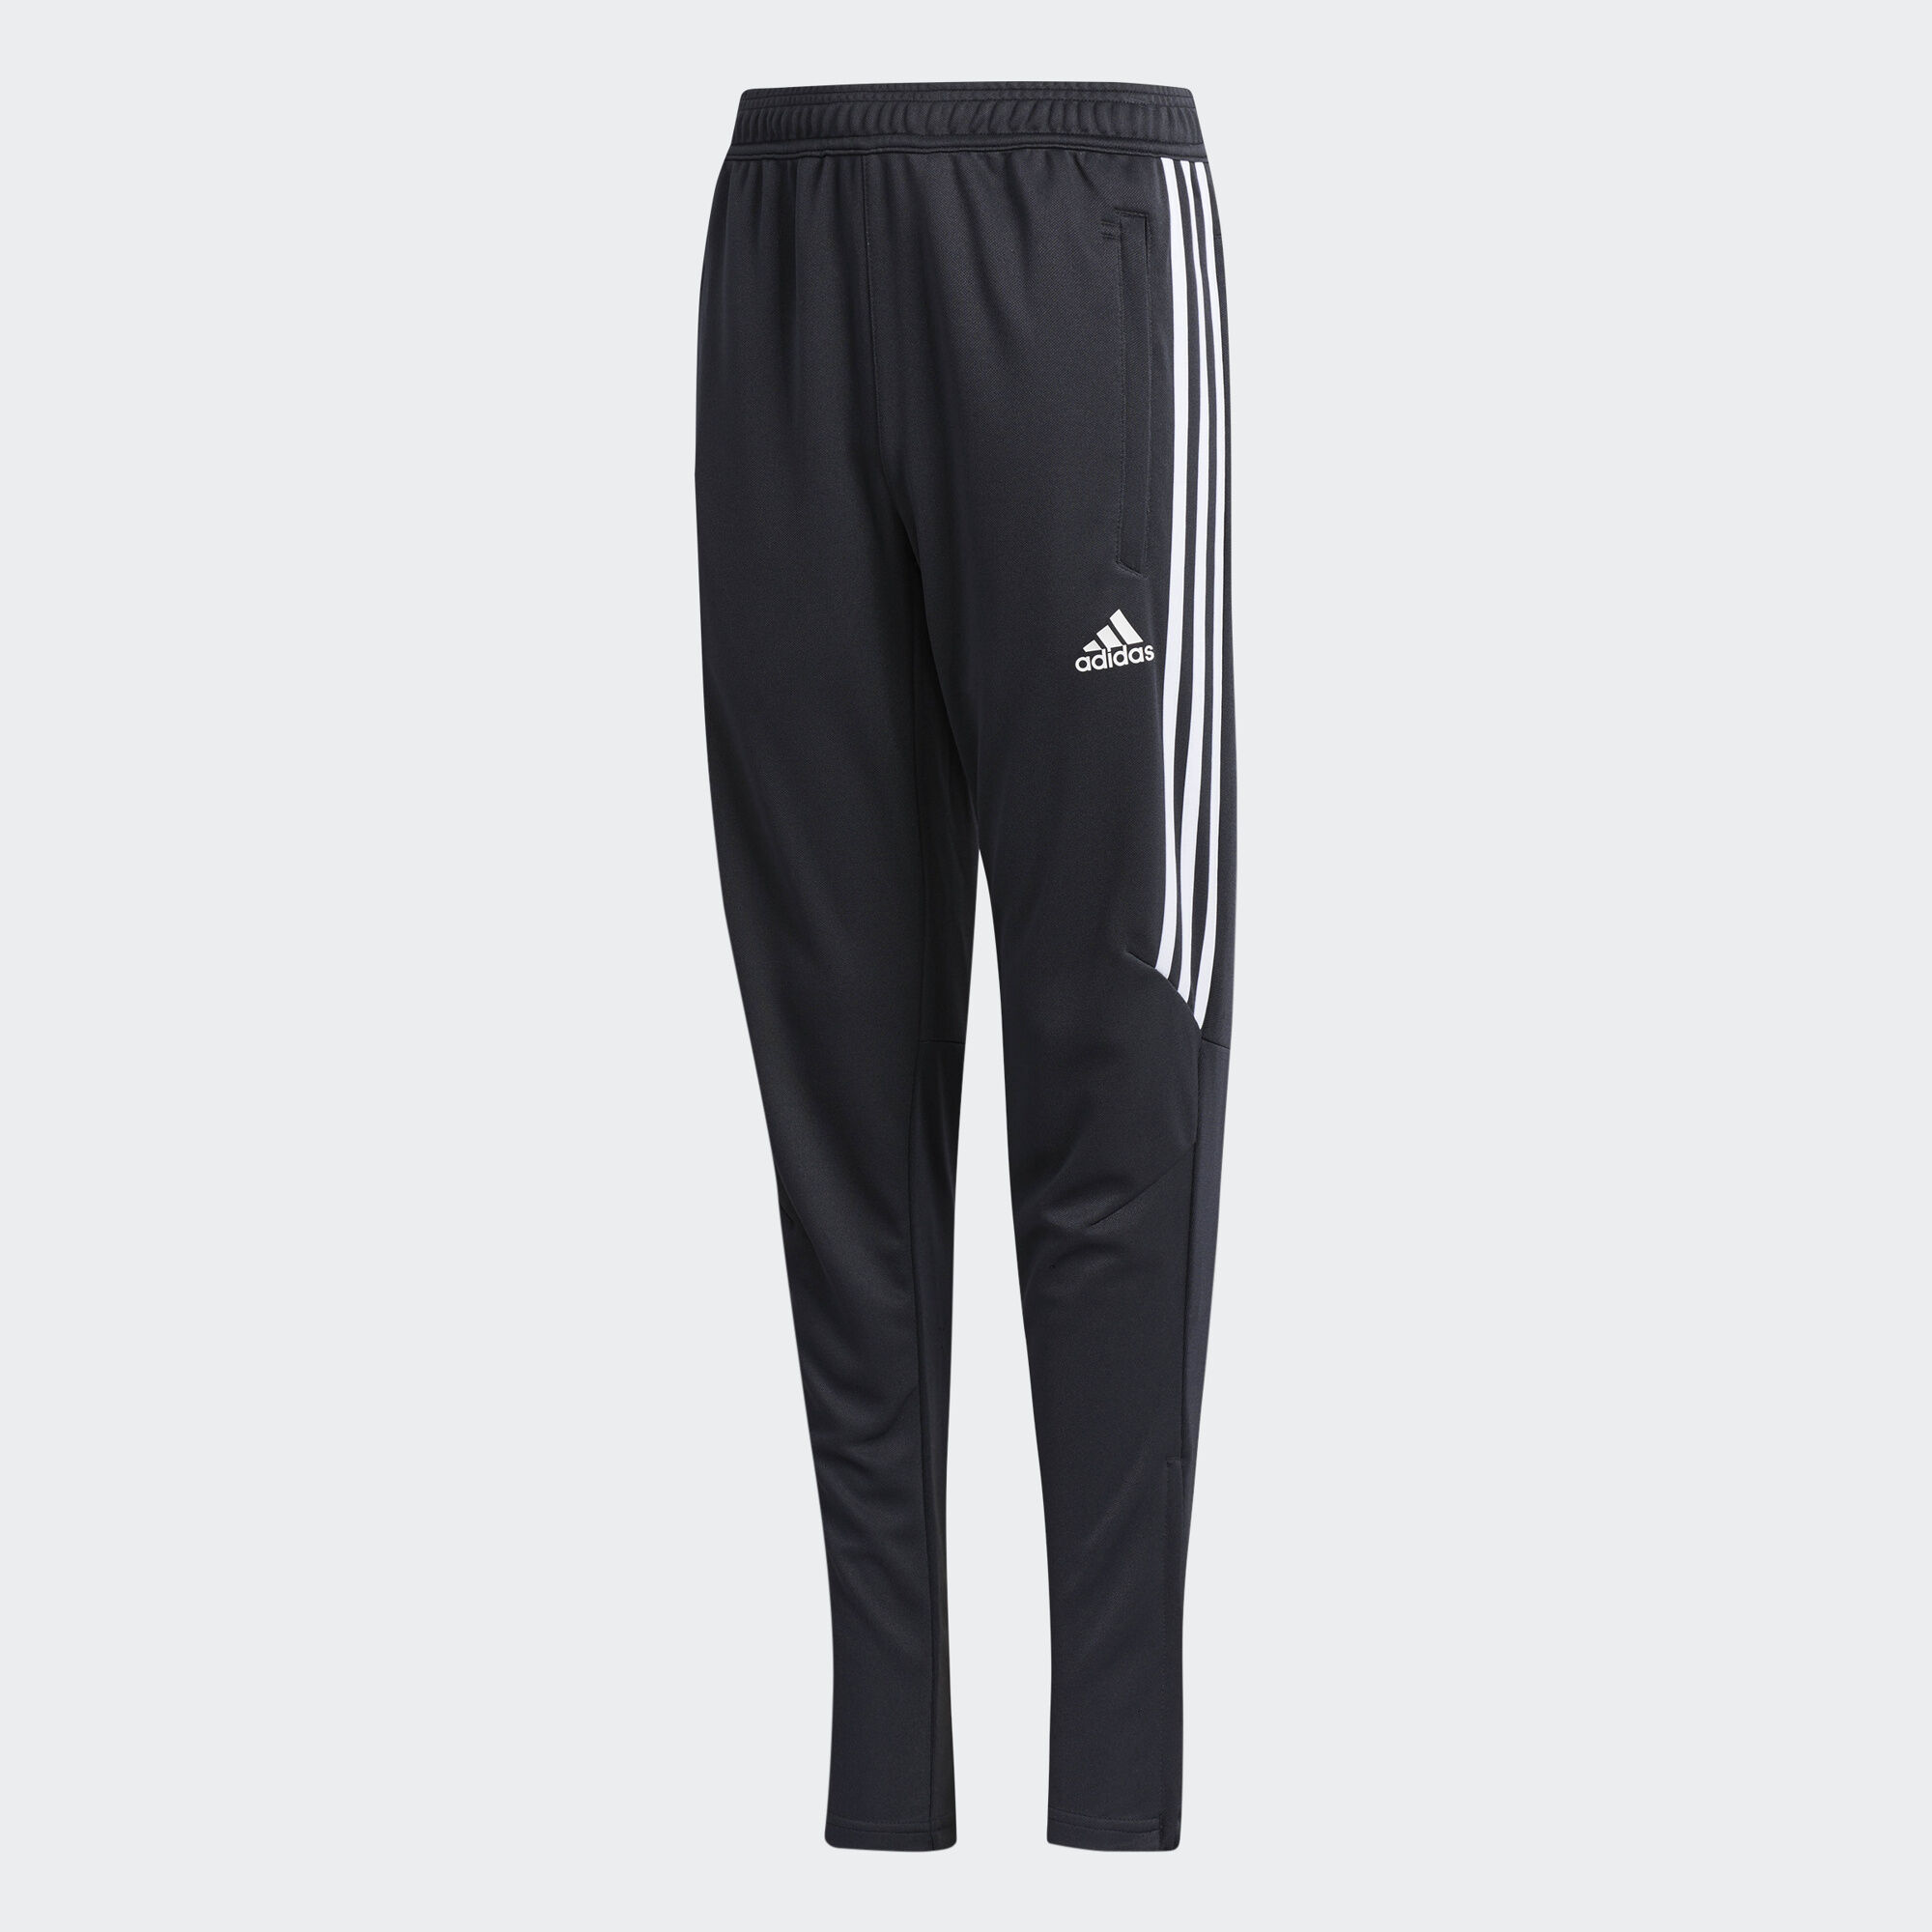 Adidas Joggers For Girls